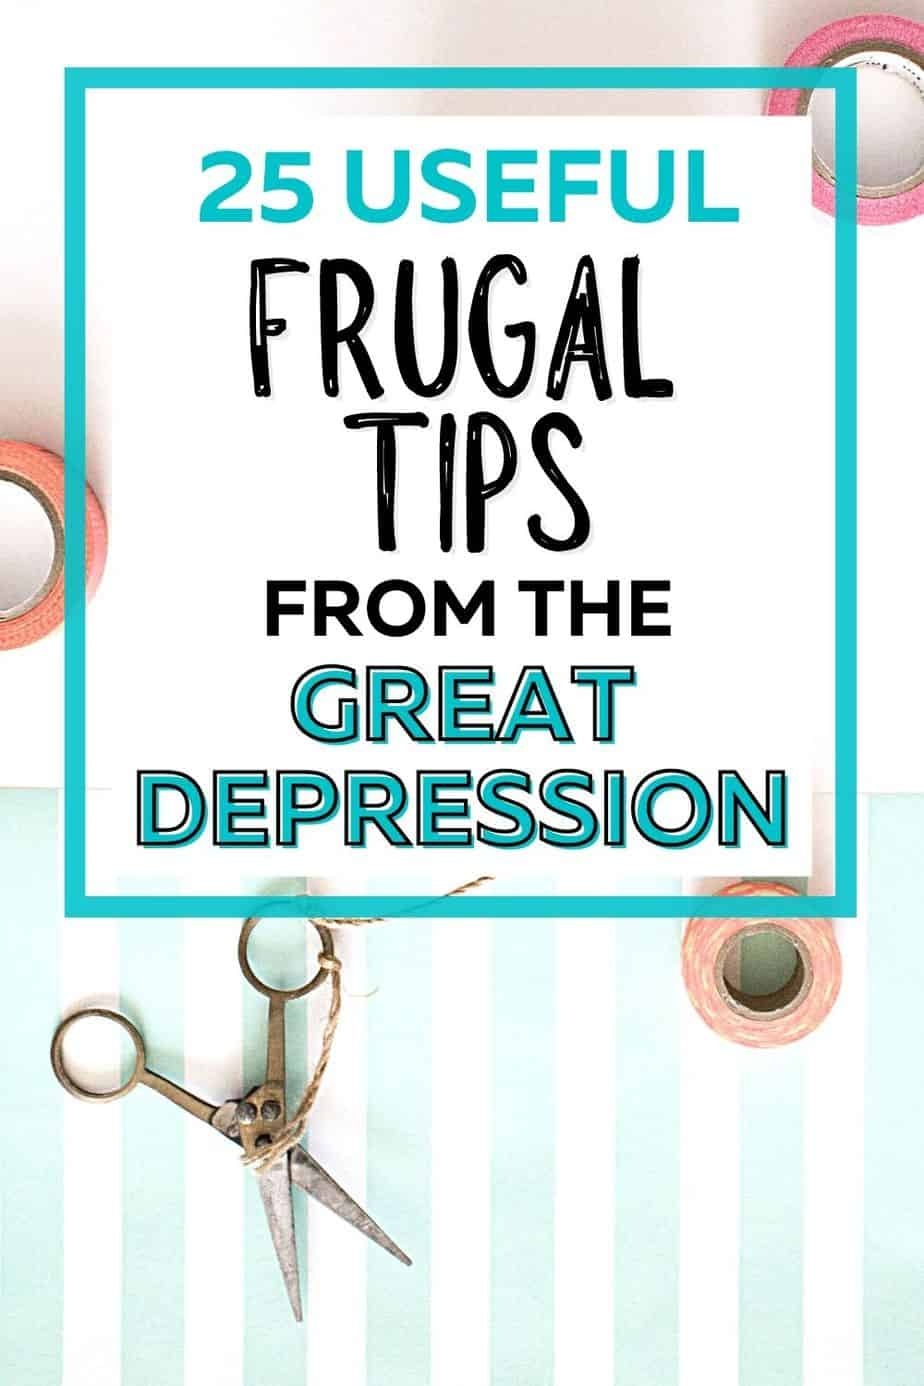 25 Frugal tips from the great depression